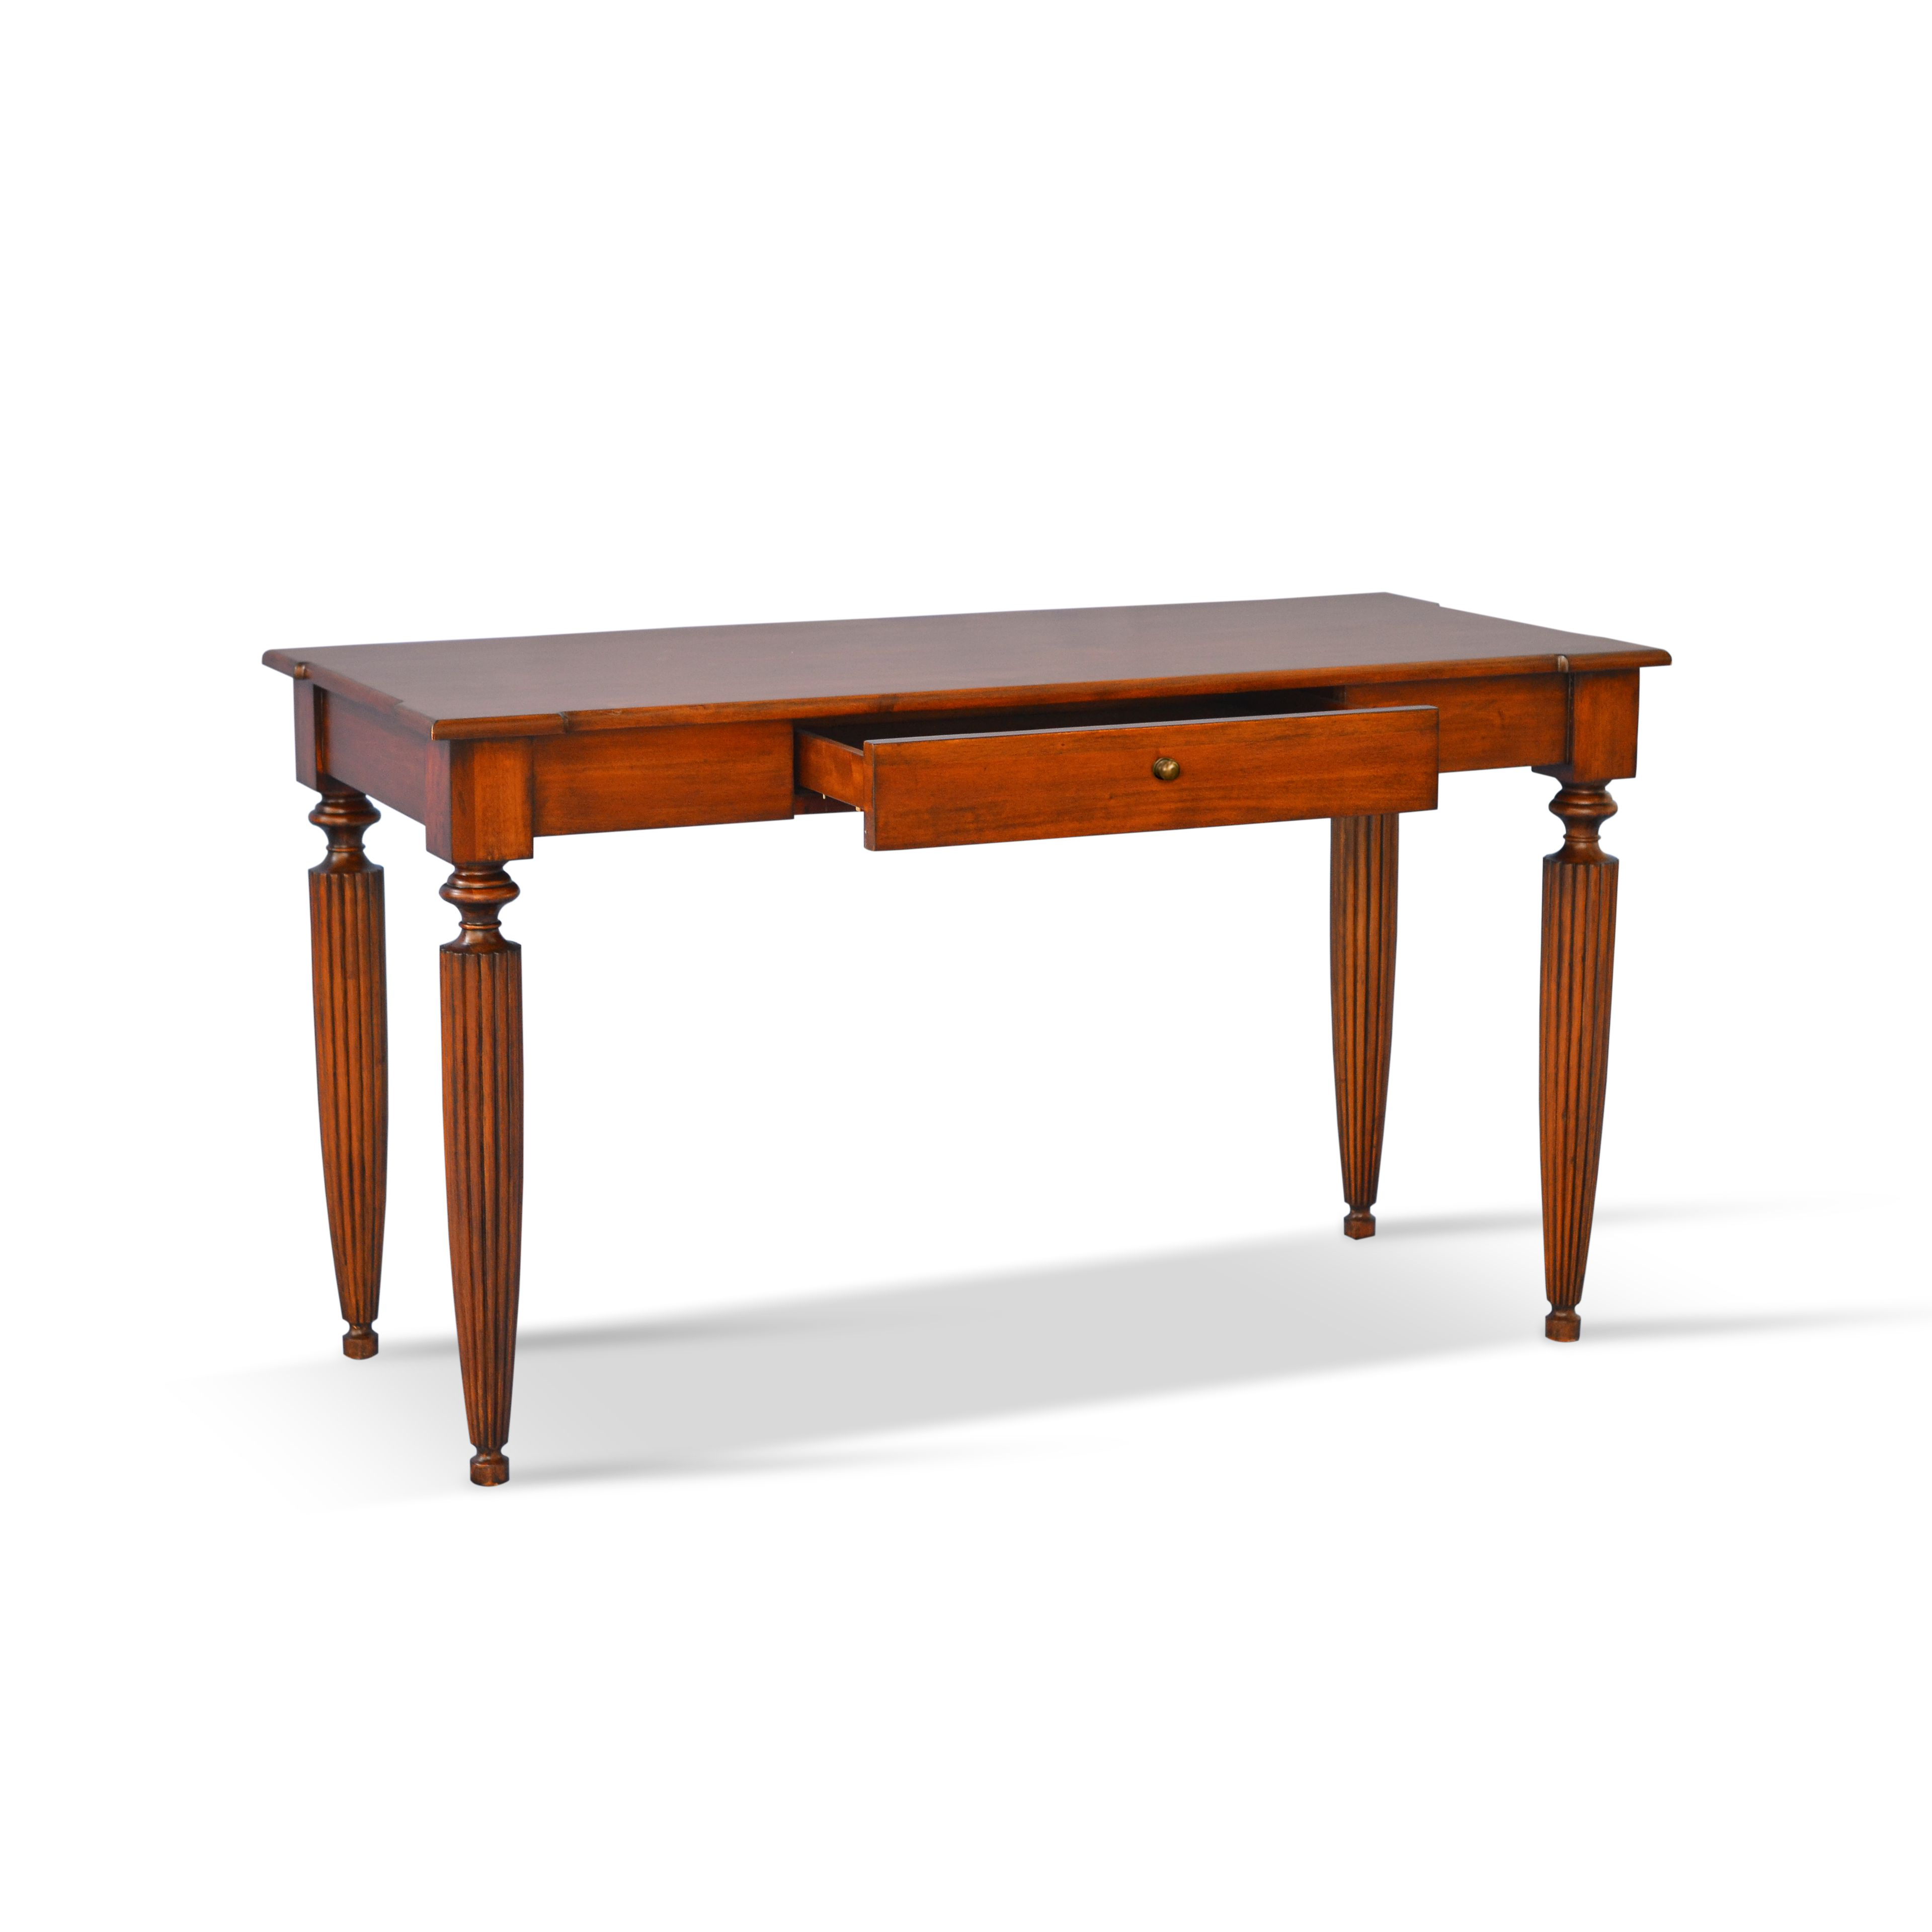 Bellini Writing Desk Writing Desk Furniture For Hotel Resort Home Office Furniture Colonial Mahogany Wooden Modern Solid Wood Buy Writing Desk Office Desk Study Desk Product On Alibaba Com